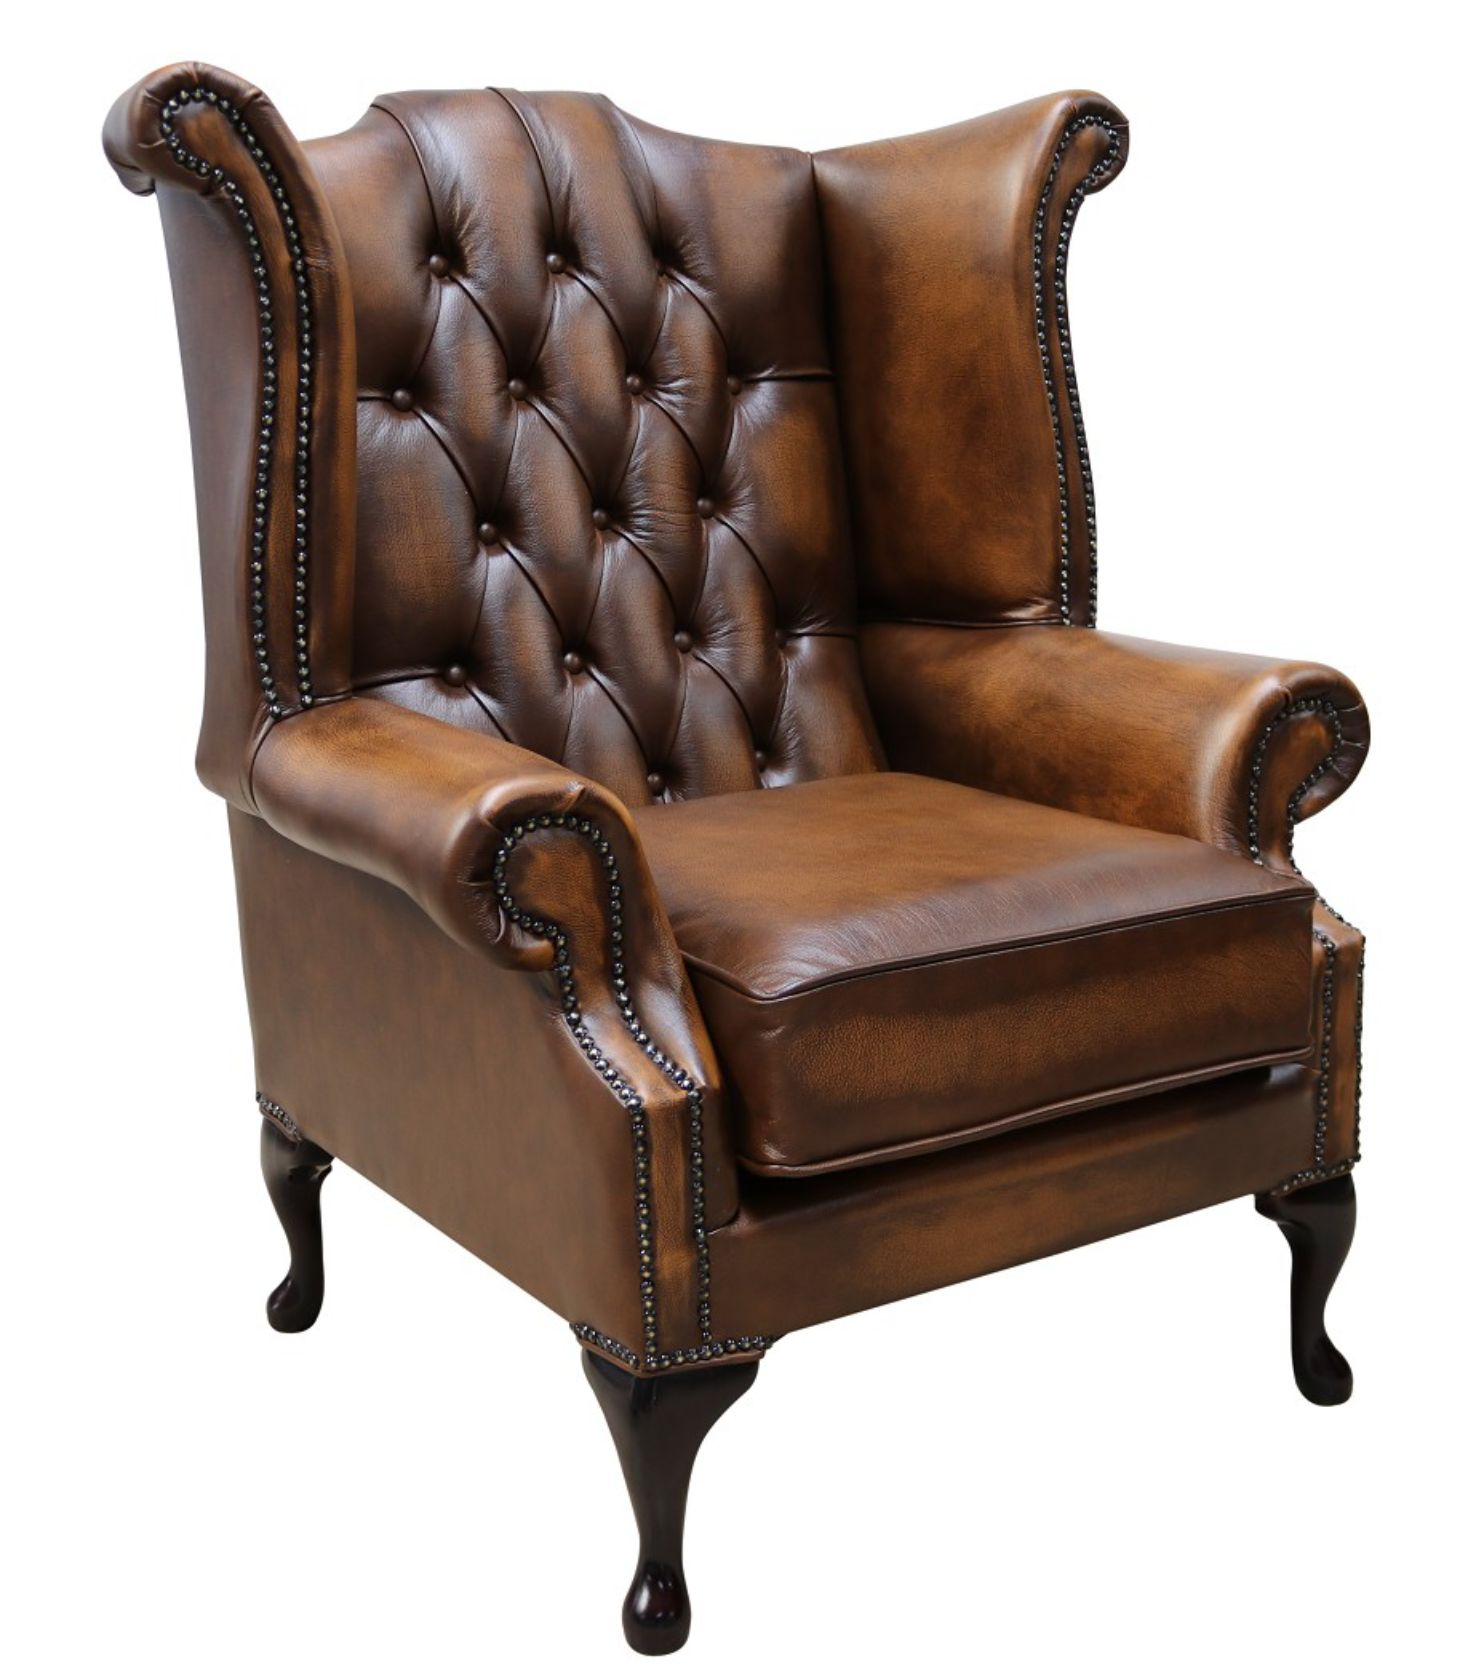 Tan Chesterfield Queen Anne Wing Chair Designersofas4u